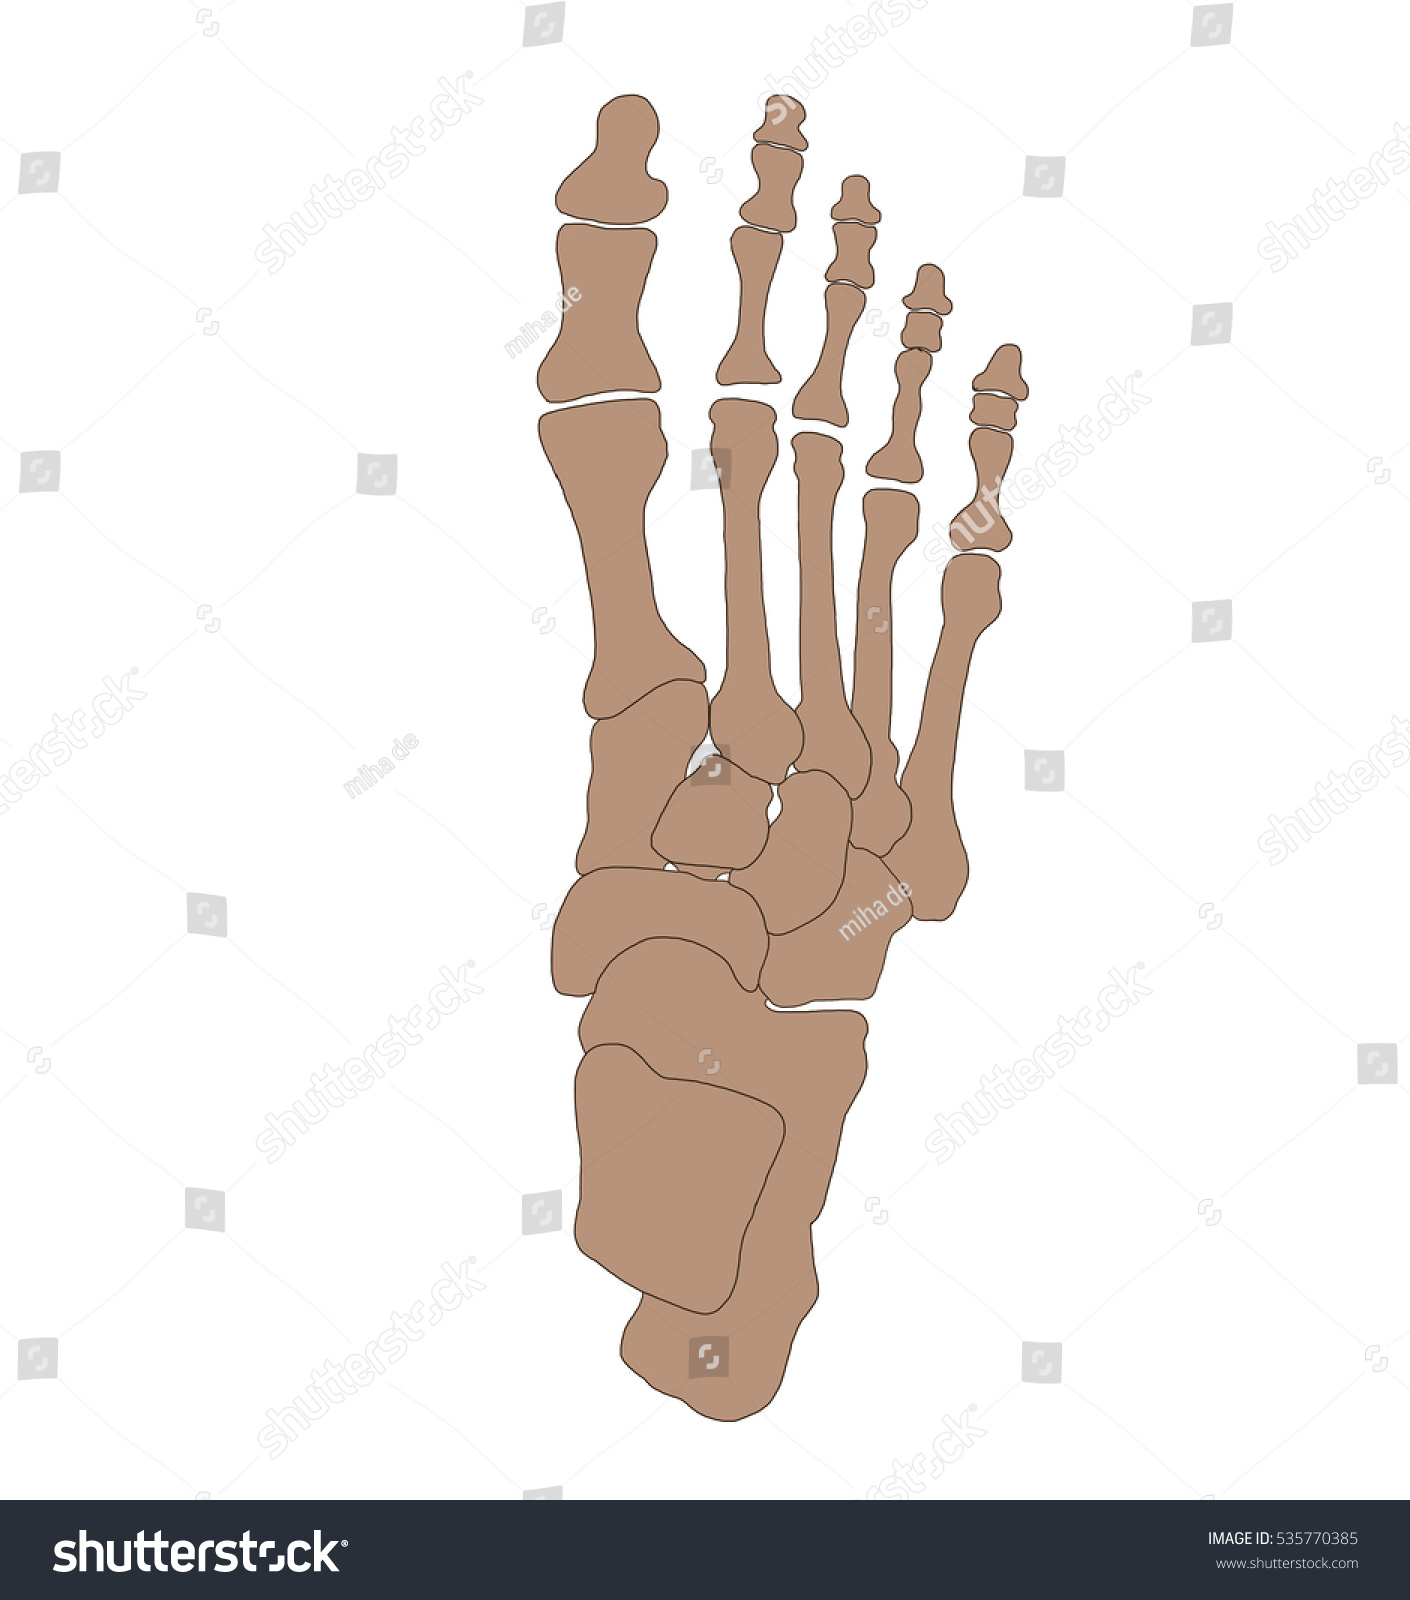 Foot Anatomy Foot Bones Stock Illustration 535770385 Shutterstock